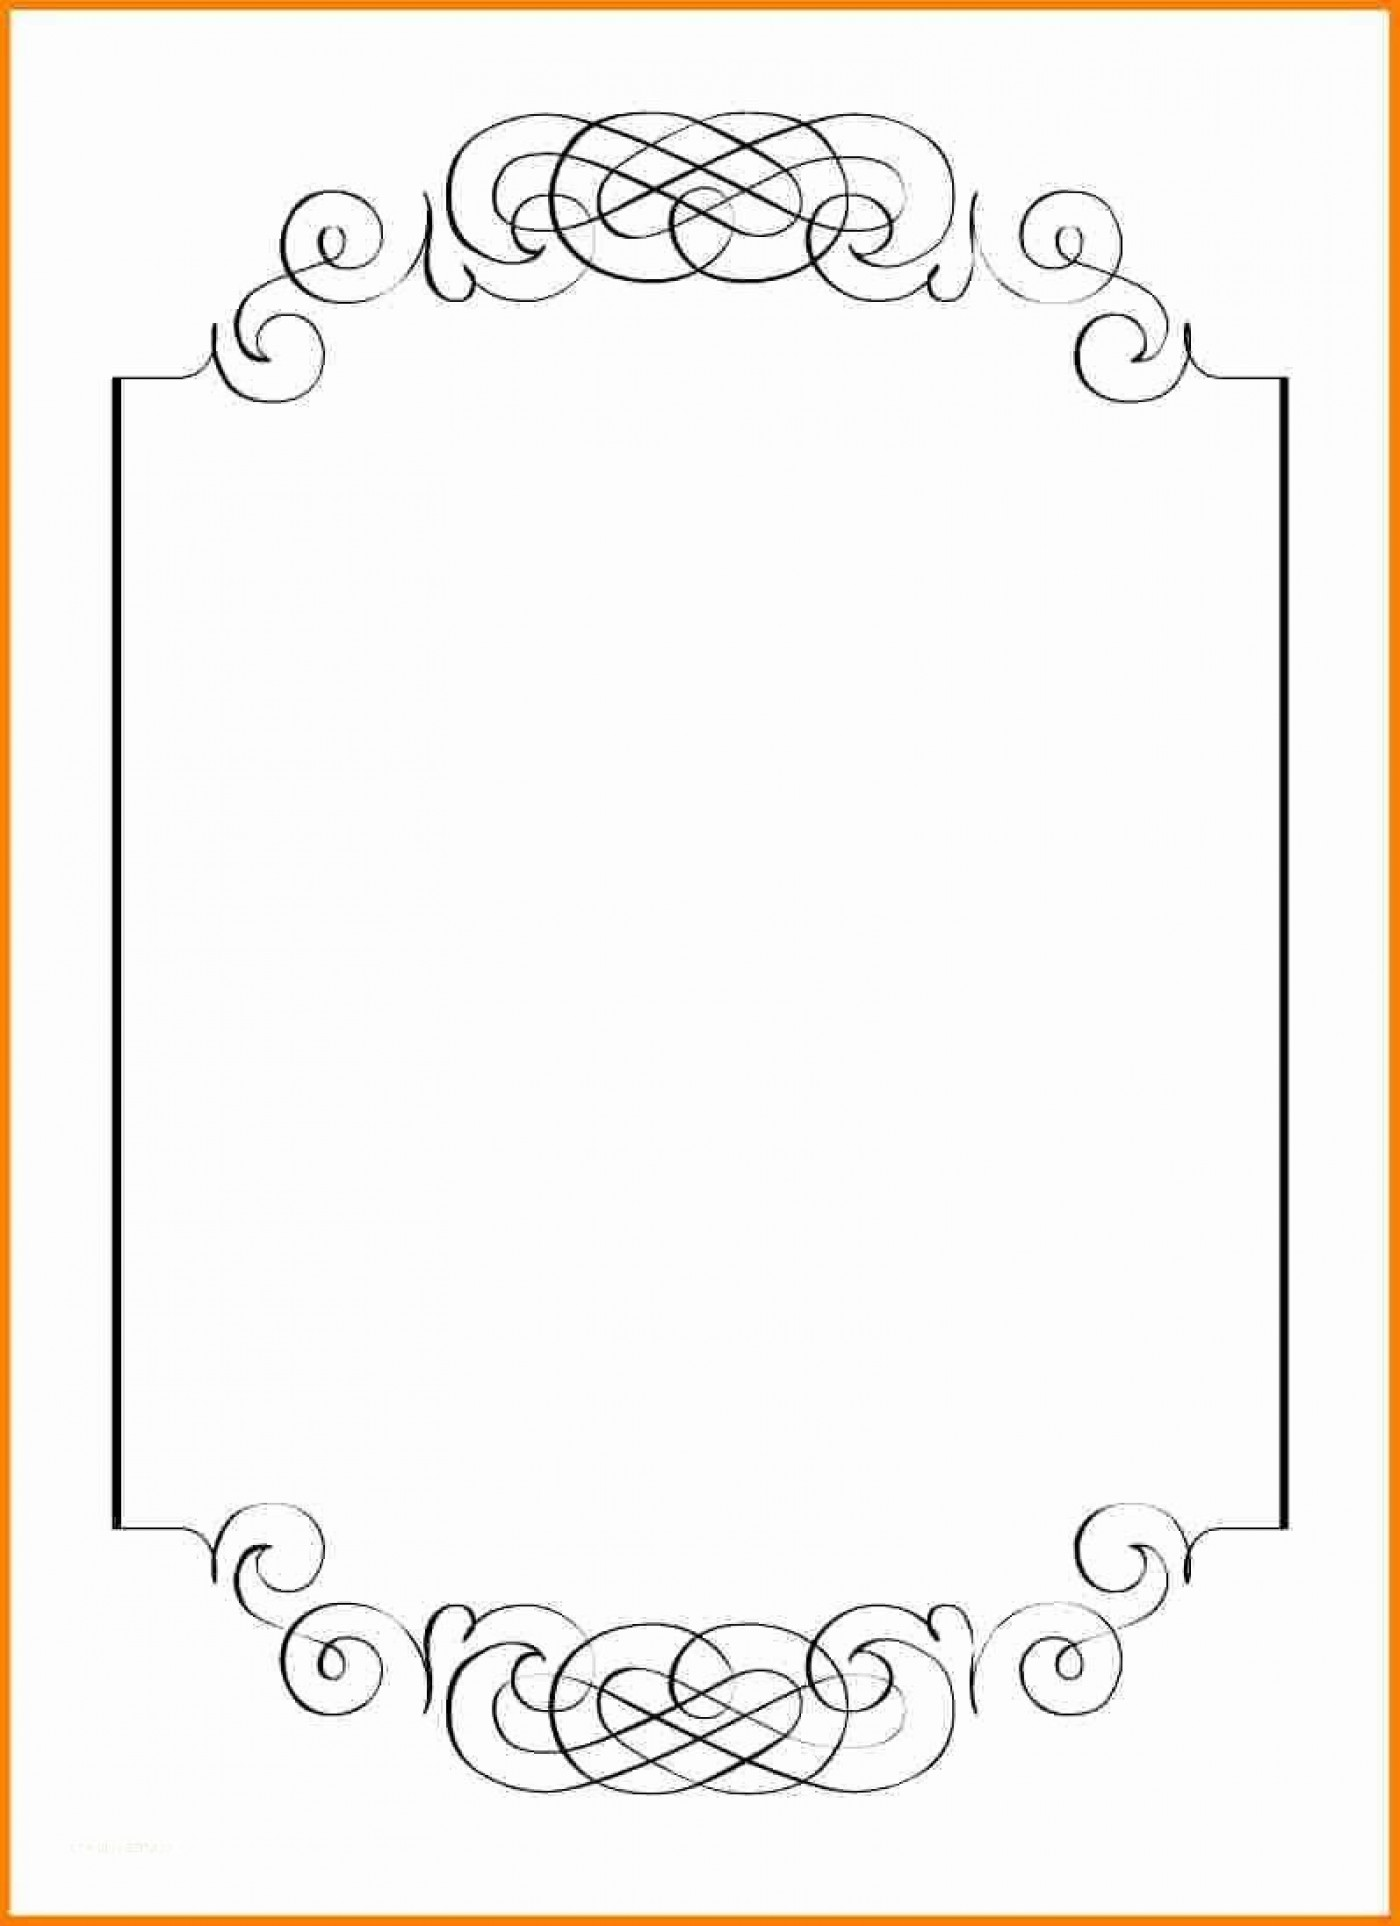 000 Rare Blank Birthday Invitation Template For Microsoft Word Photo 1400